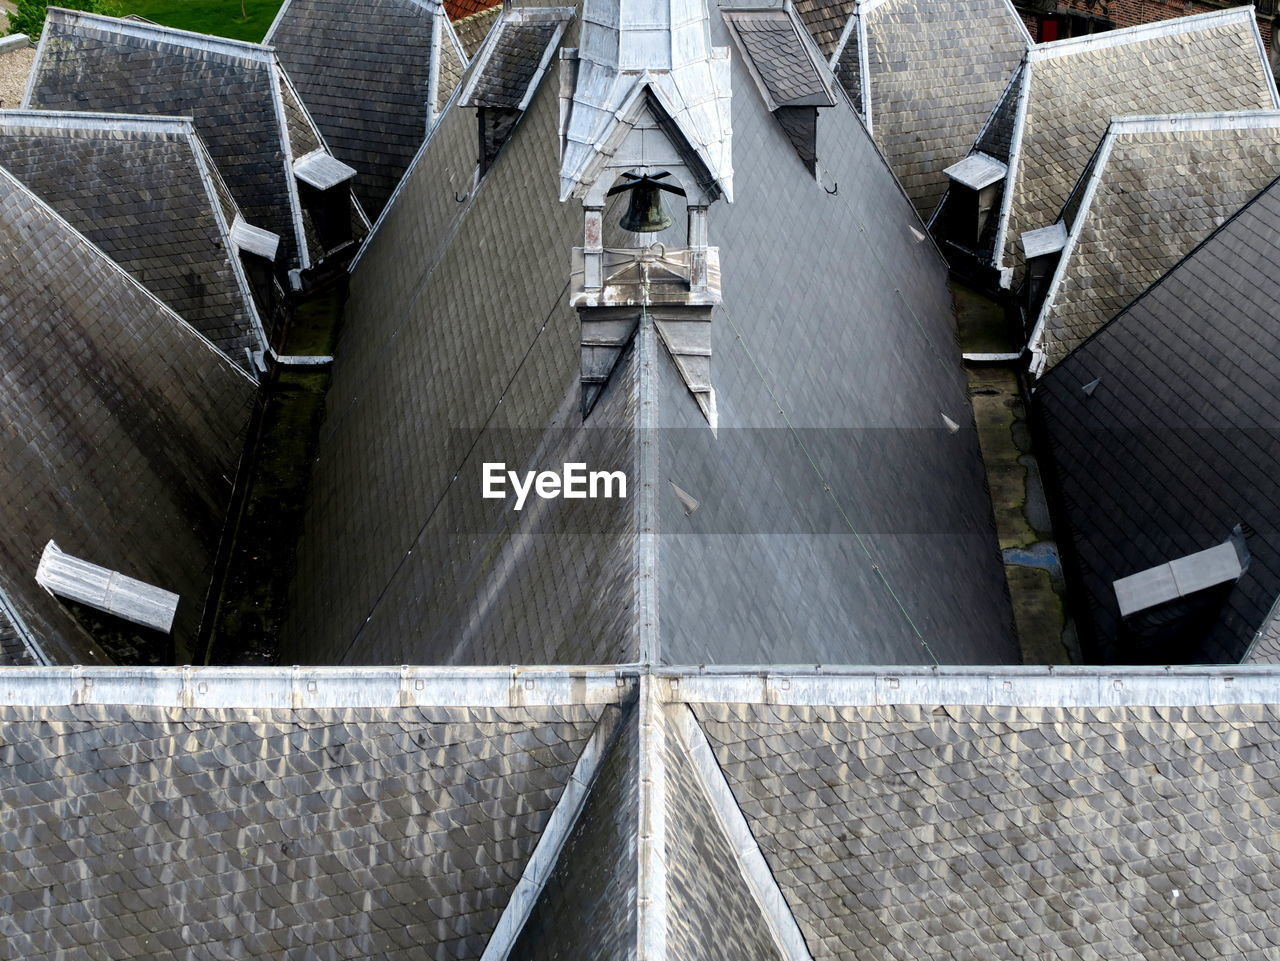 architecture, built structure, high angle view, day, no people, building exterior, outdoors, water, roof, motion, concrete, transportation, nature, city, building, wall, renewable energy, fuel and power generation, hydroelectric power